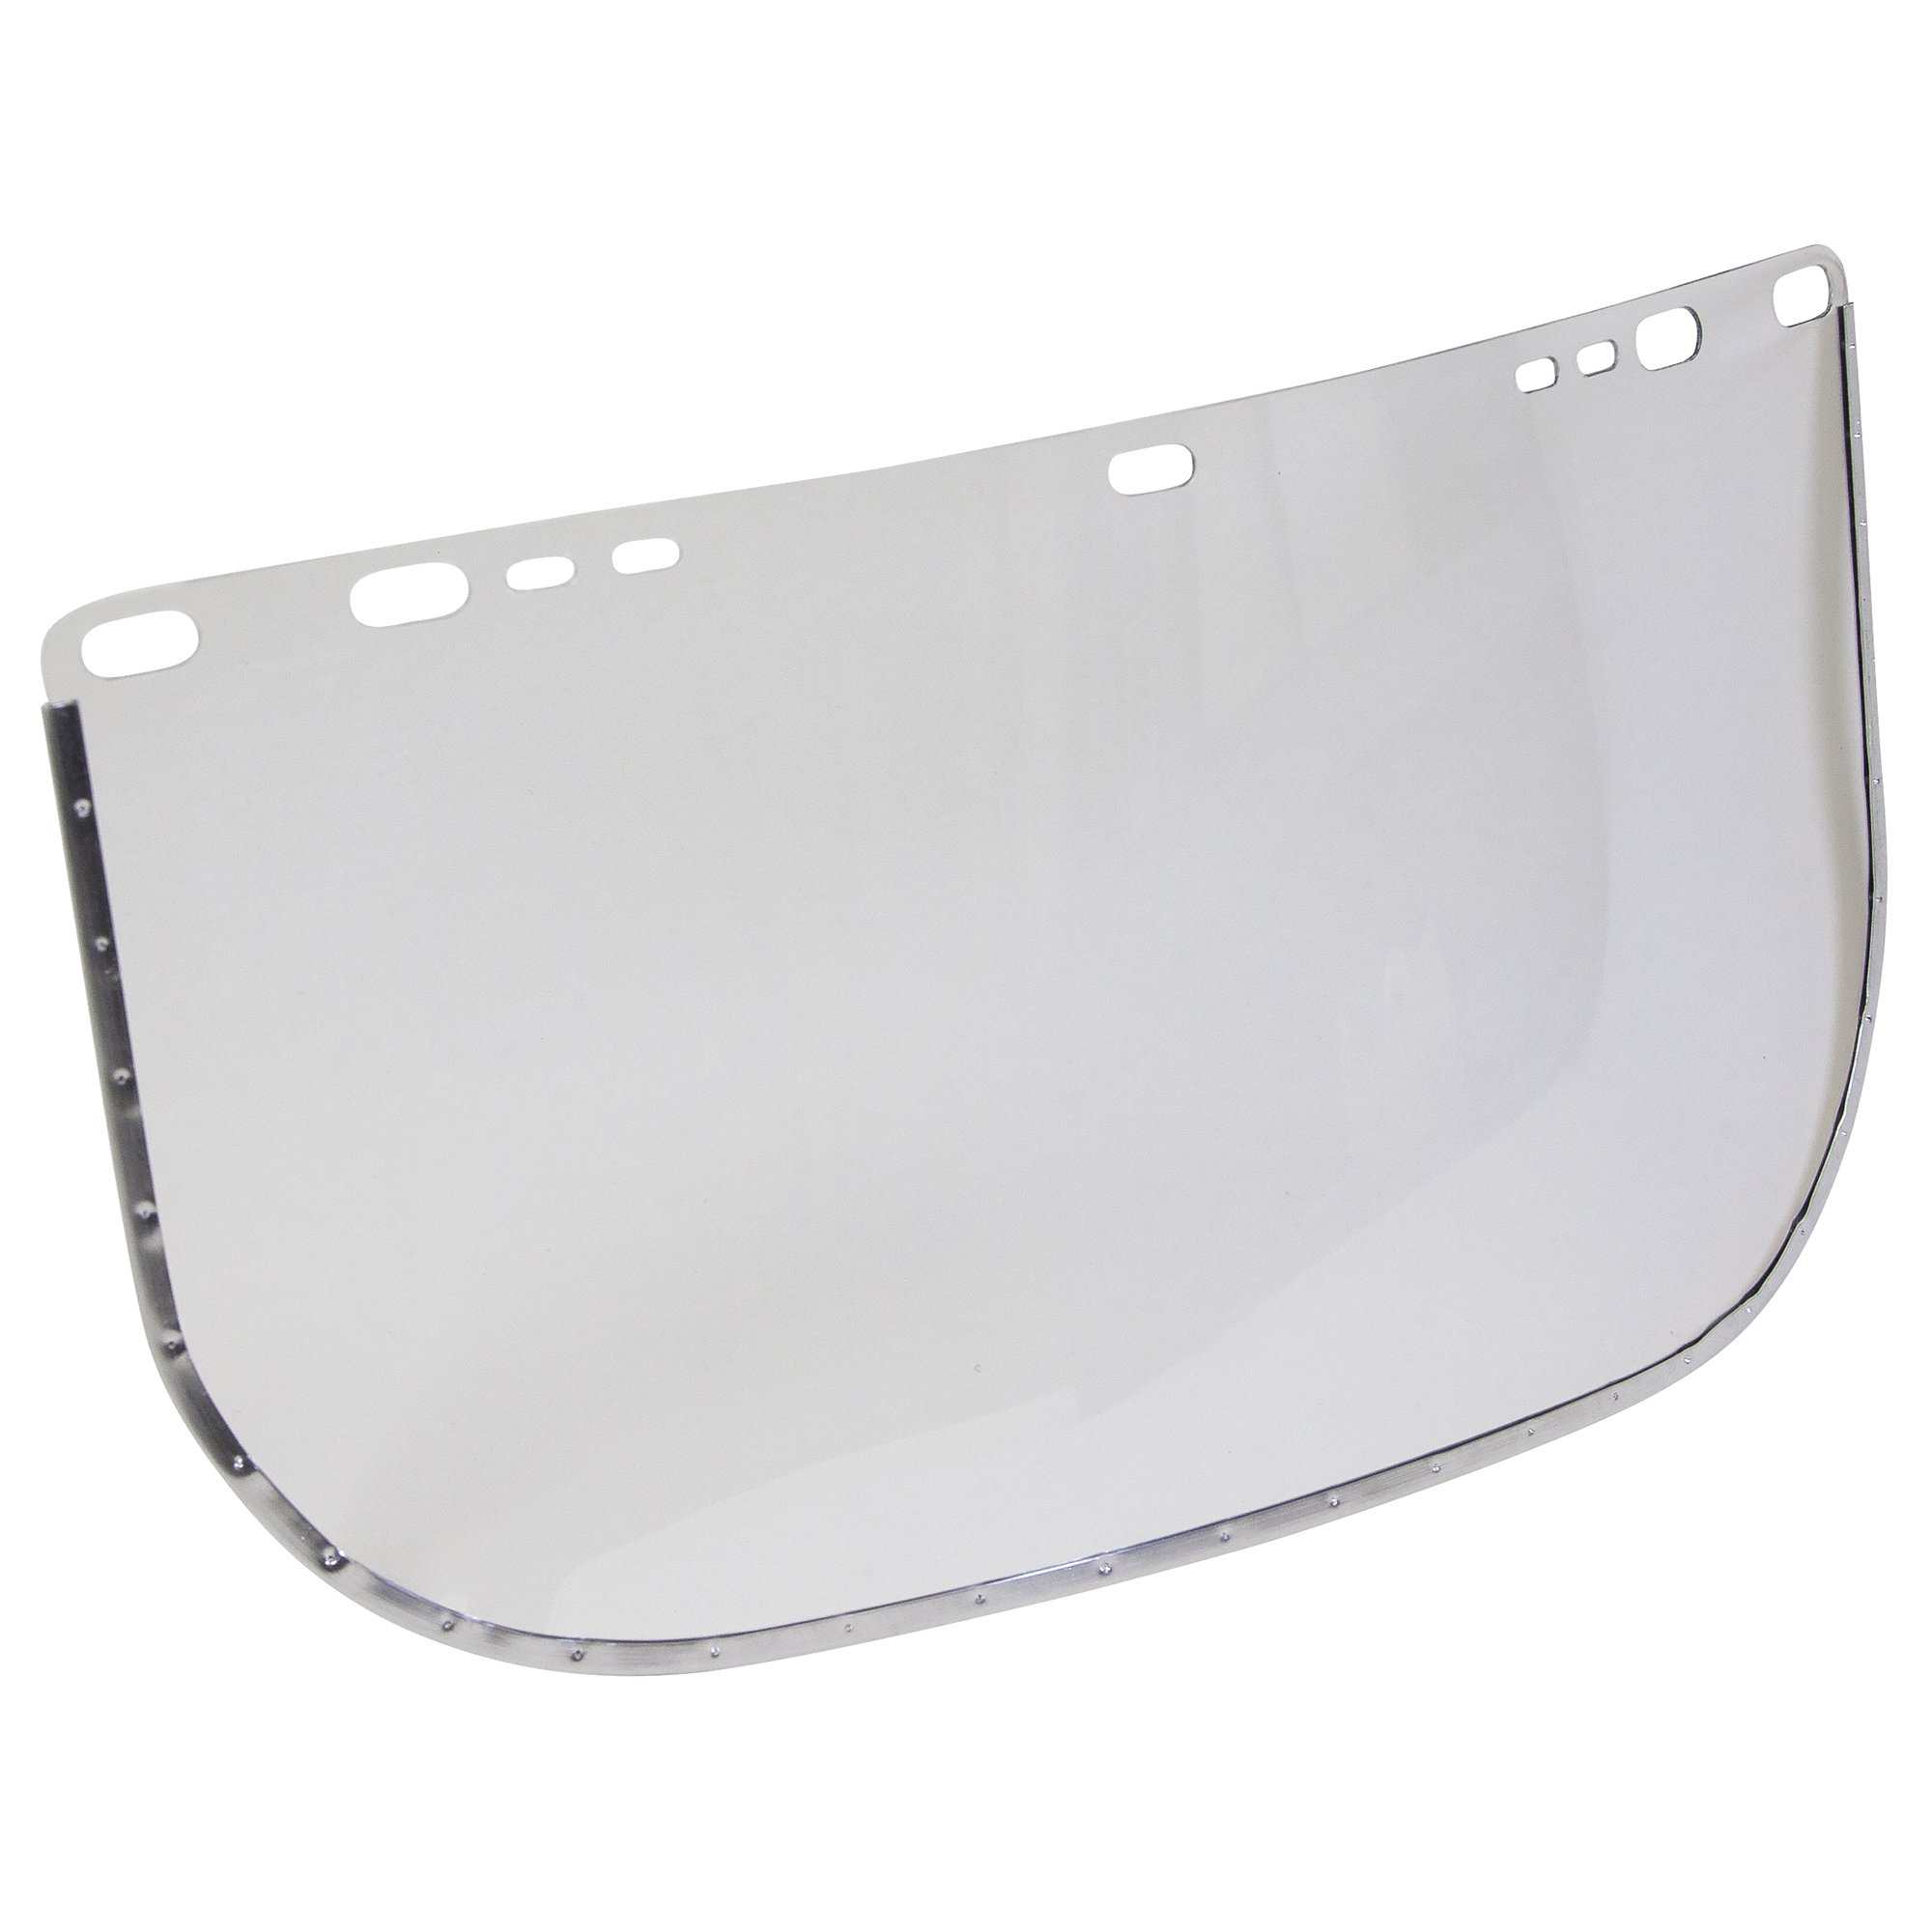 """Jackson Safety F30 Acetate Face Shield (29052), 8"""" x 15.5"""" Clear, Reusable Face Protection, 24 Shields/Case"""